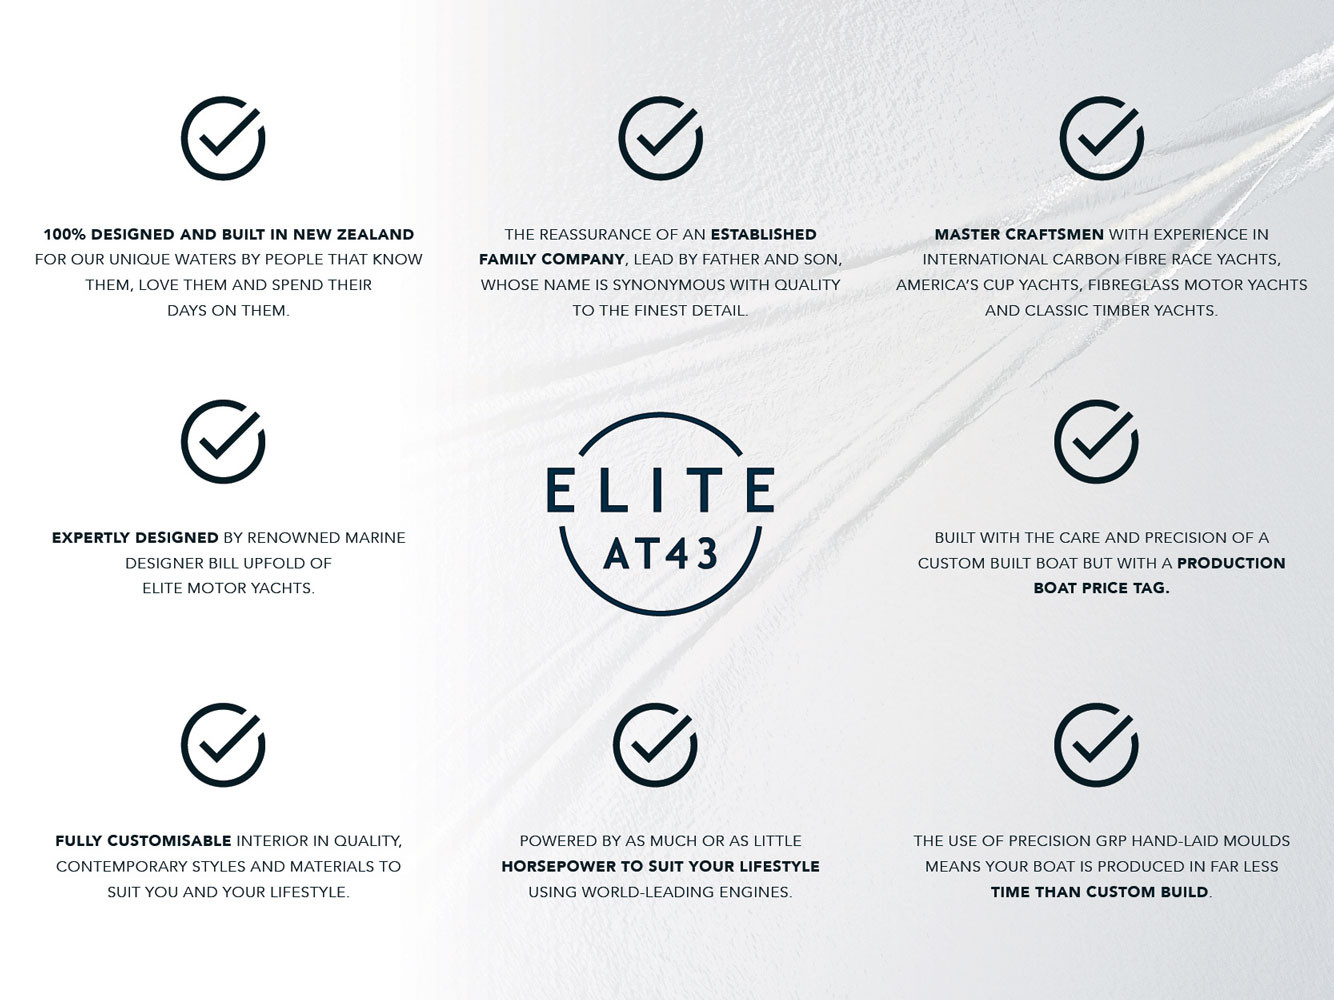 Elite AT43 bullet points